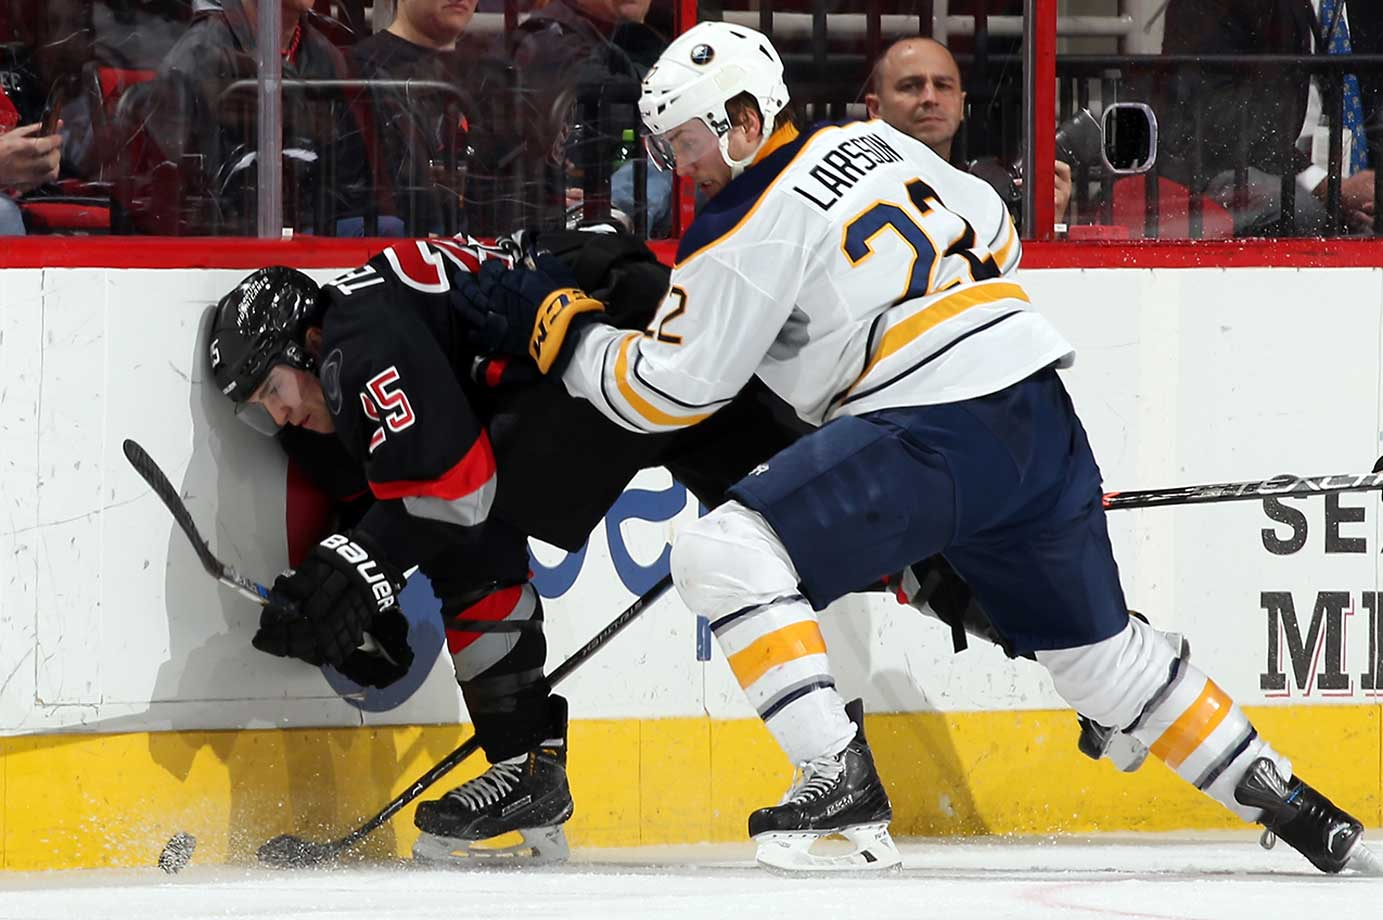 Johan Larsson of the Buffalo Sabres knocks Chris Terry of the Carolina Hurricanes off the puck.